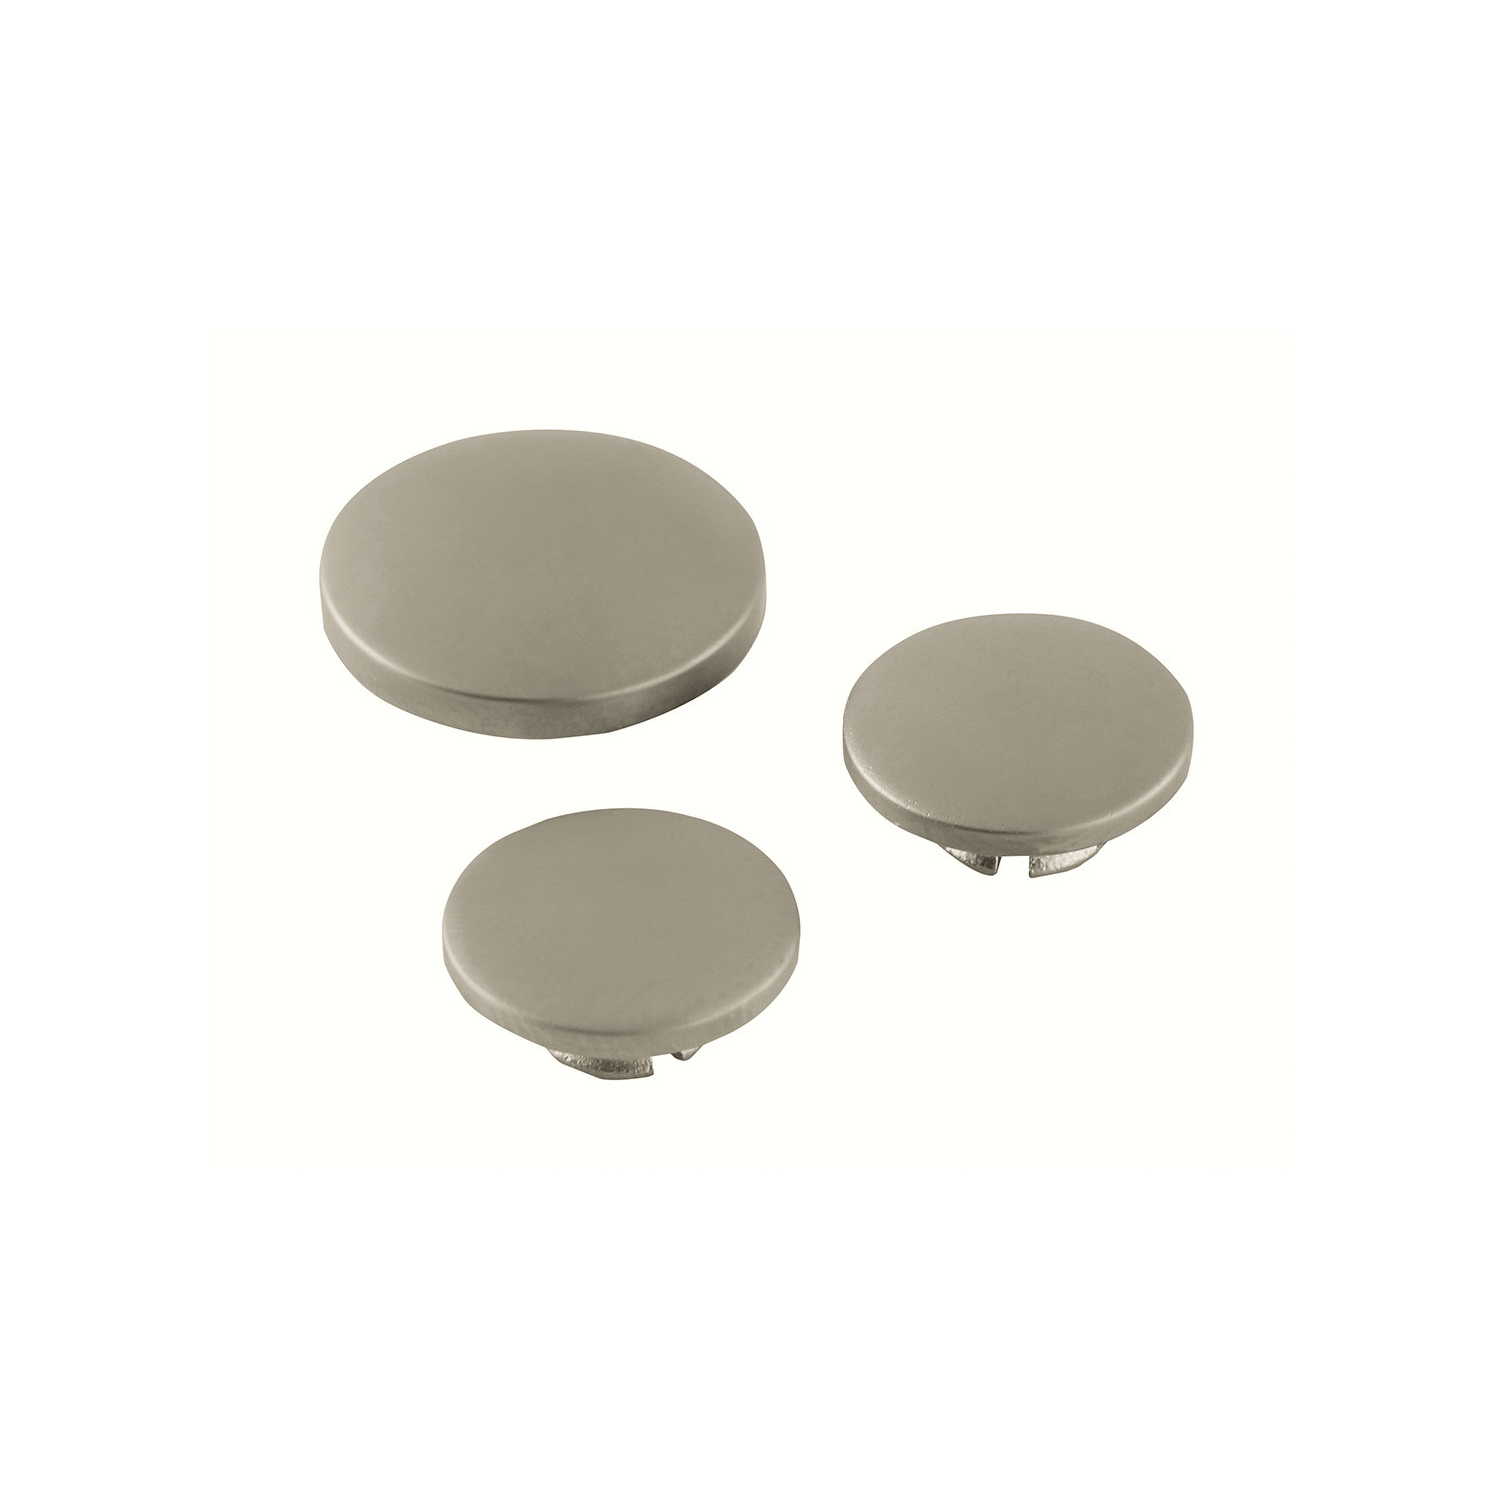 GROHE 45952EN0 Seabury Cap, For Use With Diverter Tub Spout and Bathroom Sink, Brass, Brushed Nickel, Import